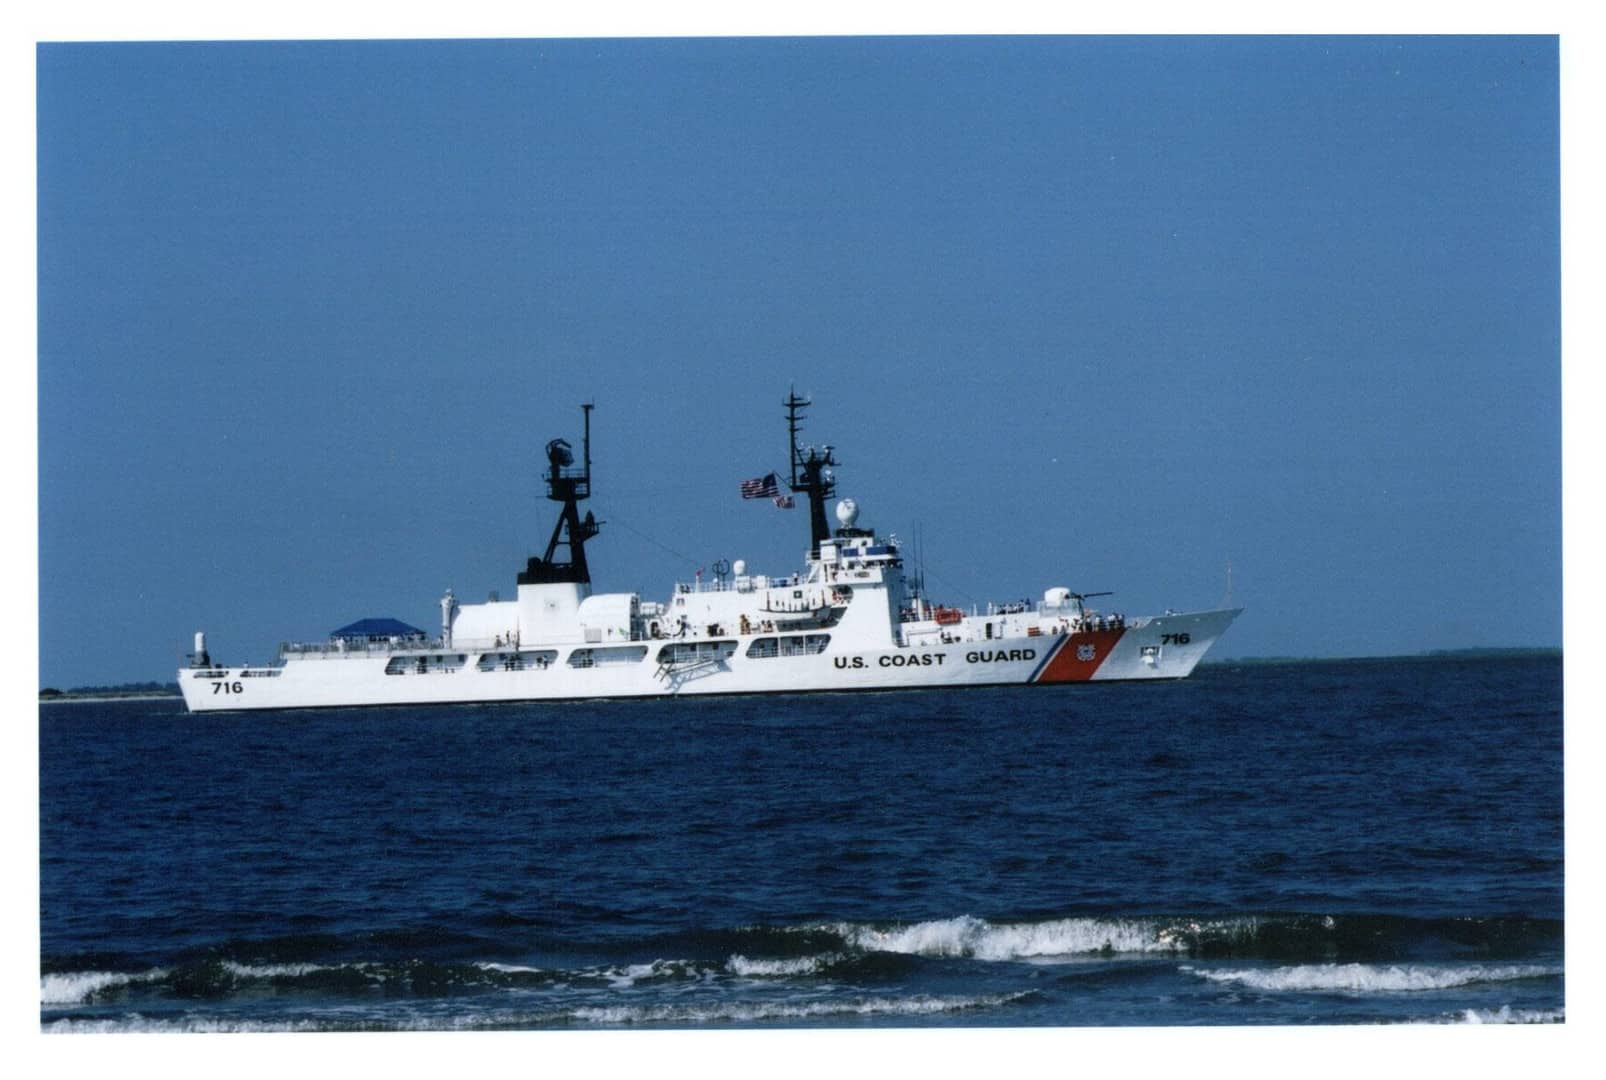 New Coast Guard Safety Certification Required for Commercial Fishing Vessels